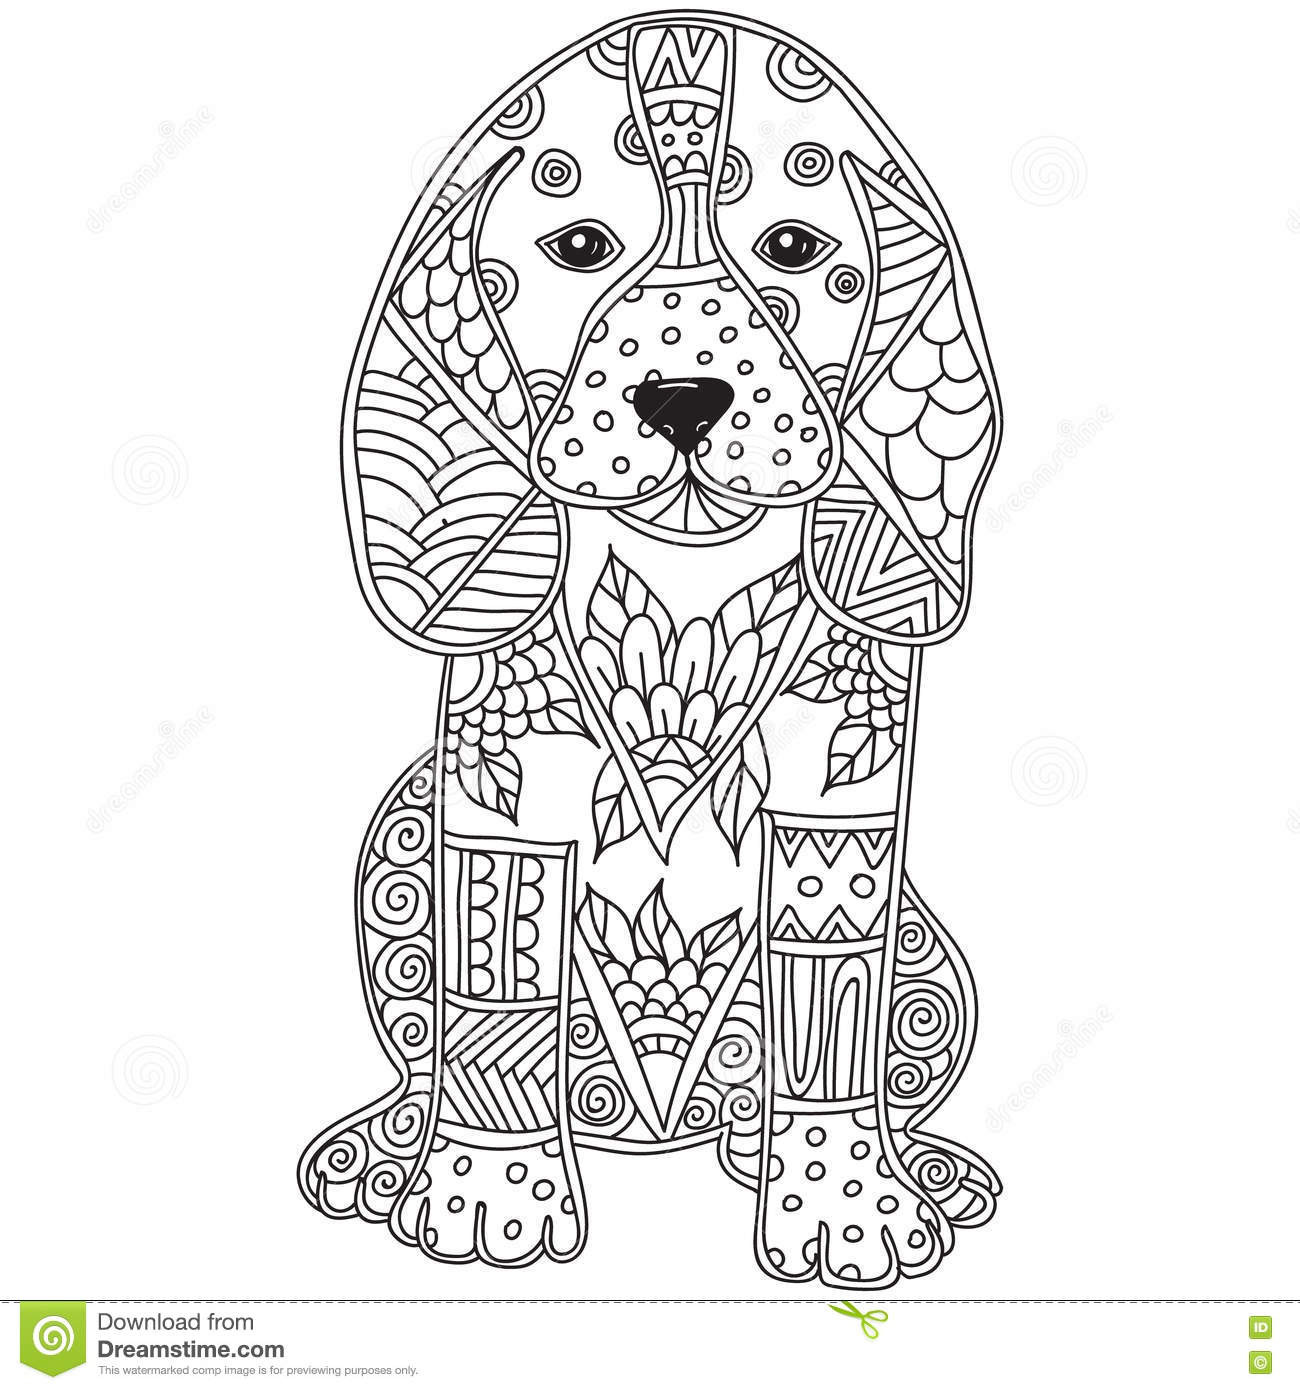 Best ideas about Dogs Coloring Pages For Adults . Save or Pin Free Printable Coloring Pages For Kids Animals Shirts Now.